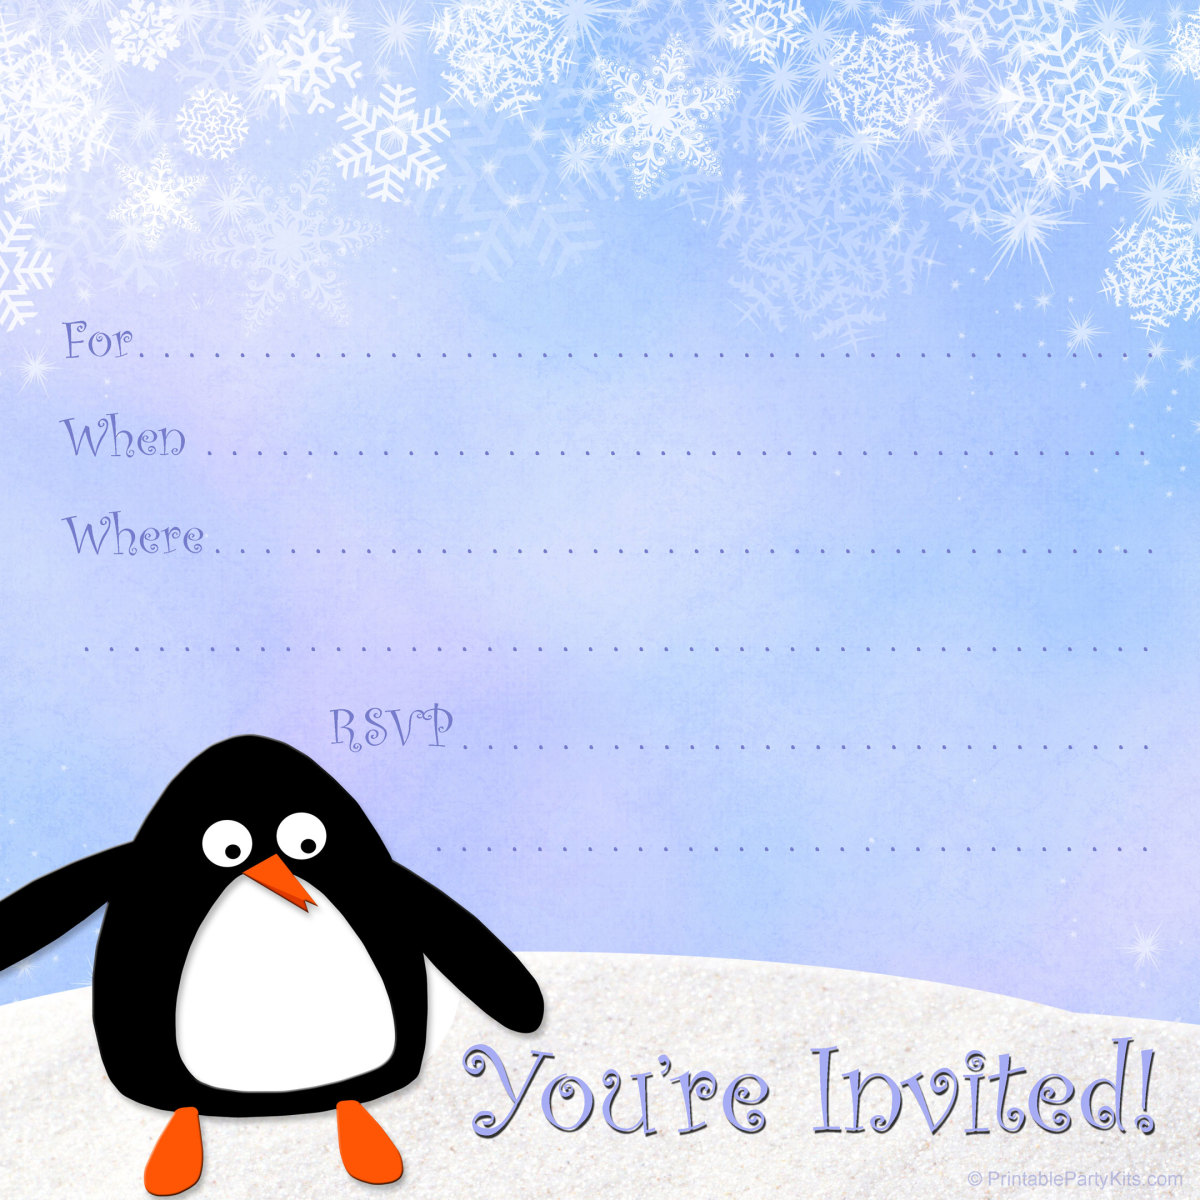 free winter invitation template: penguin and snowflakes